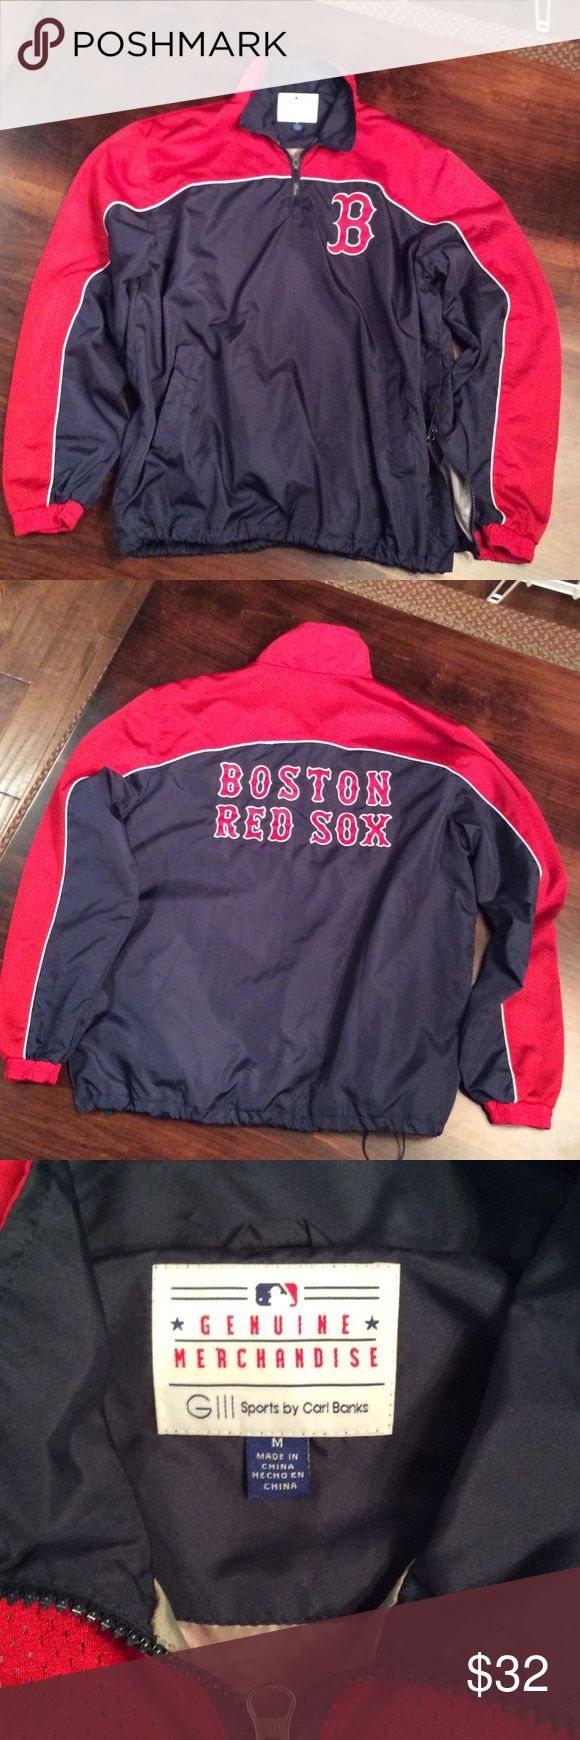 Boston Red Sox half zip pullover size M, EUC. Lined zip up pullover with front pockets and zip on one side. Features adjustable cinch waist. EUC,  it smoking home. Next day shipping. Genuine Merchandise Jackets & Coats Windbreakers